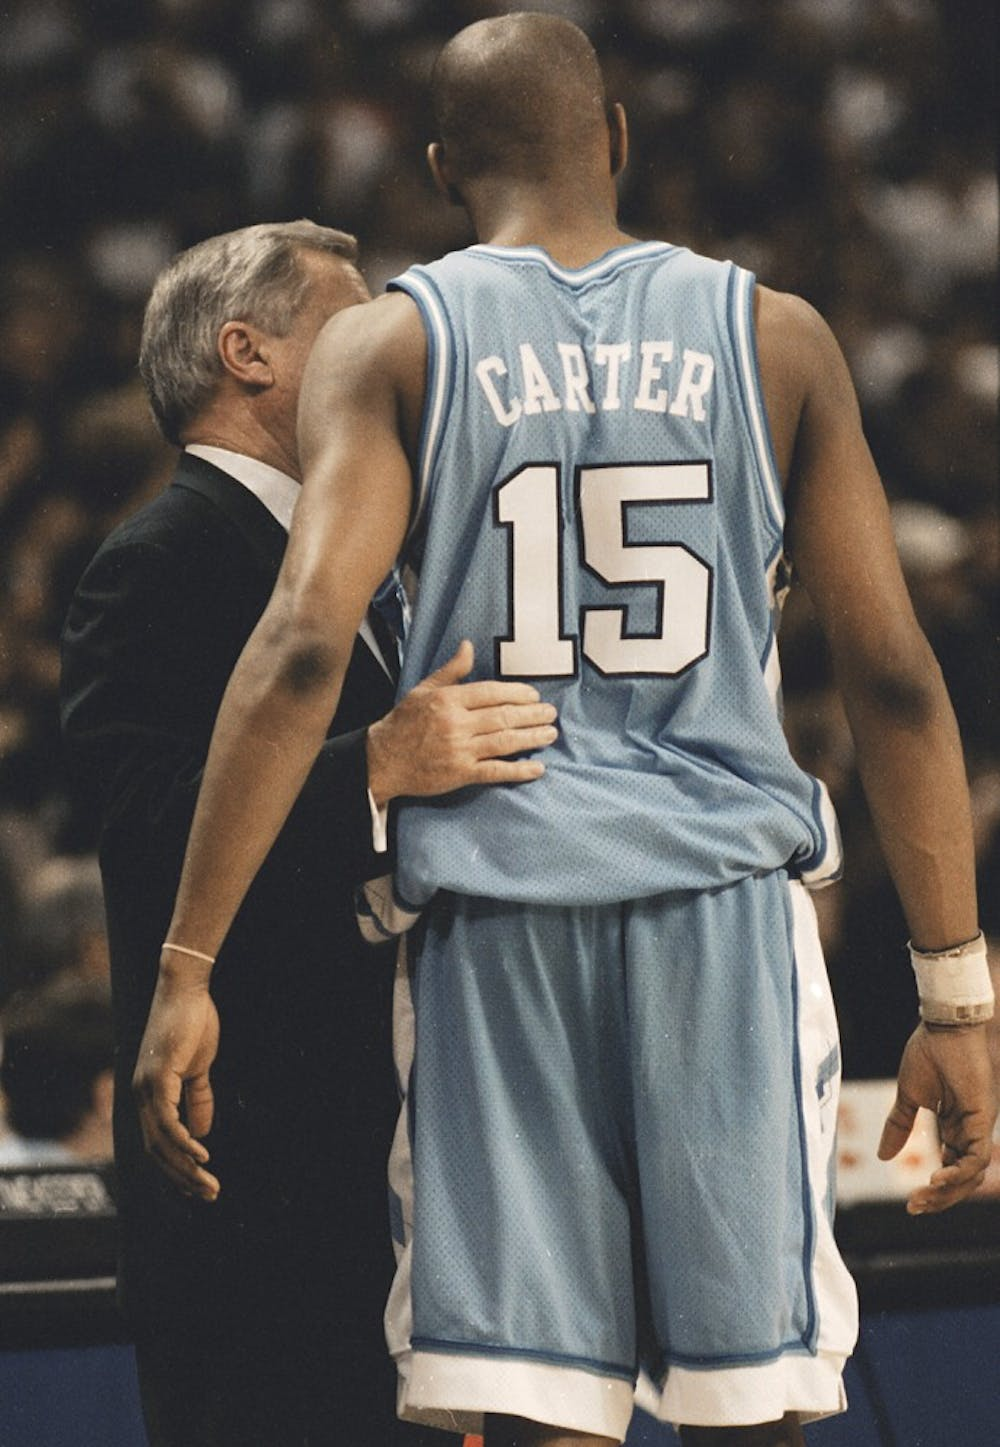 <p>Dean Smith talks to Vince Carter during the Feb. 27, 1996 game against Wake Forest. The Demon Deacons won 84-60. DTH File/Erik Perel.</p>